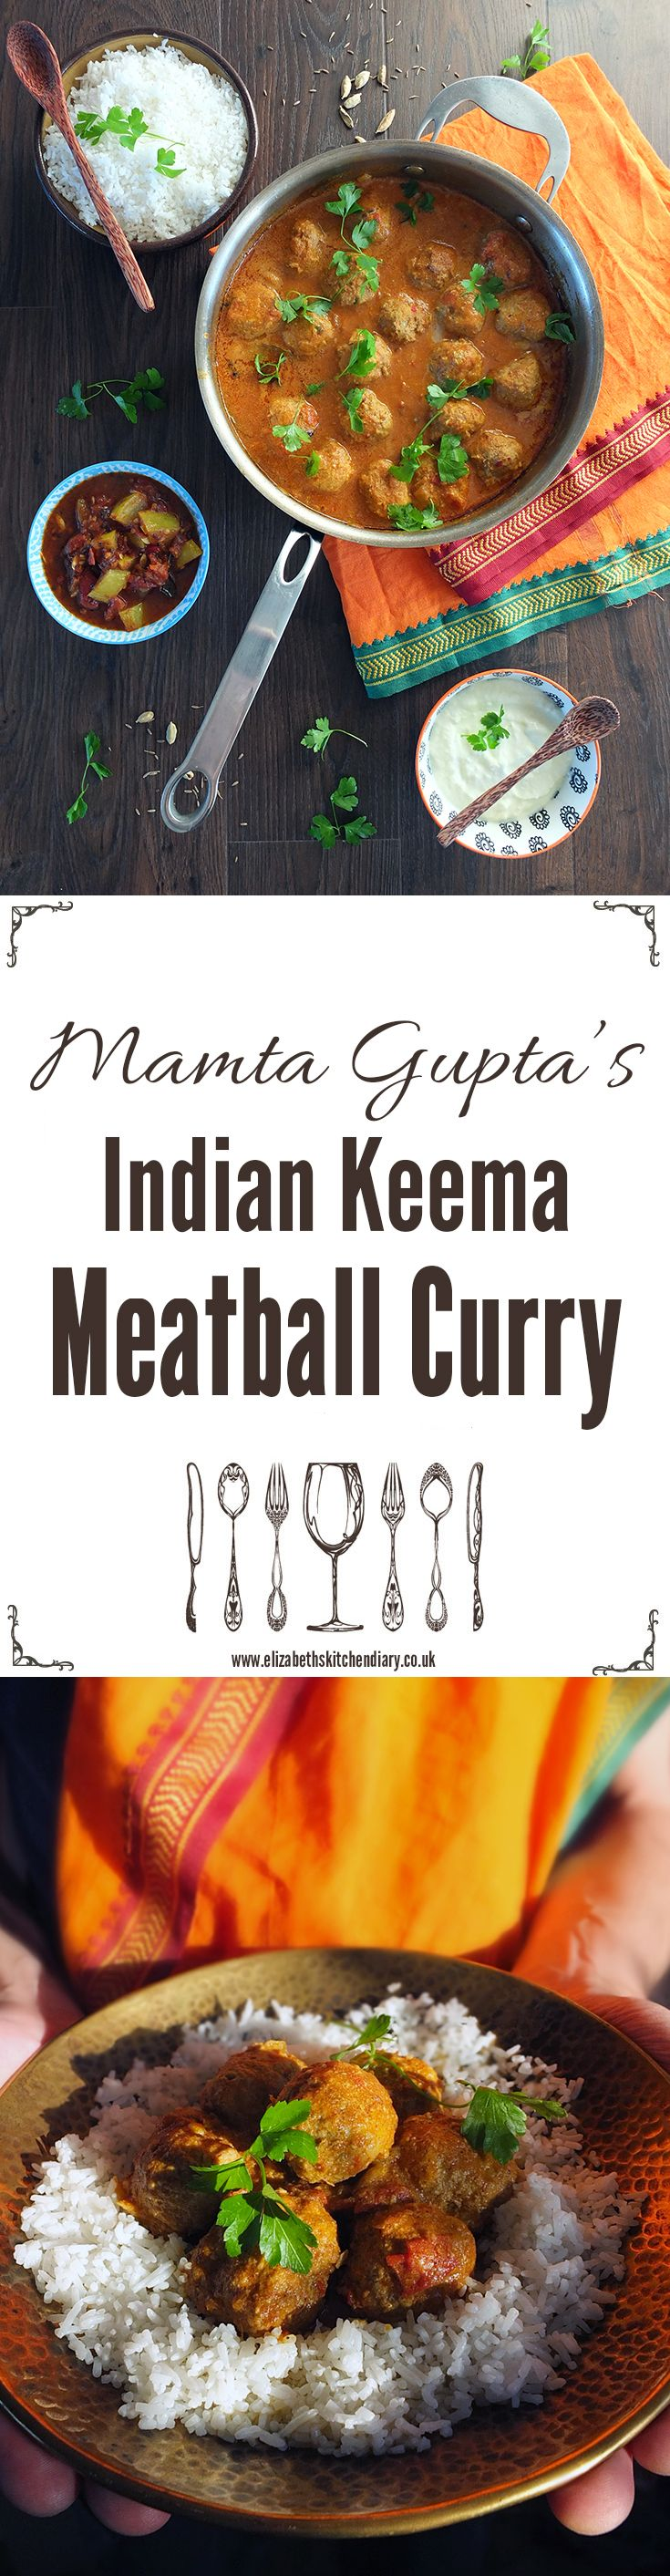 A quick and easy meatball curry recipe made from lamb mince.